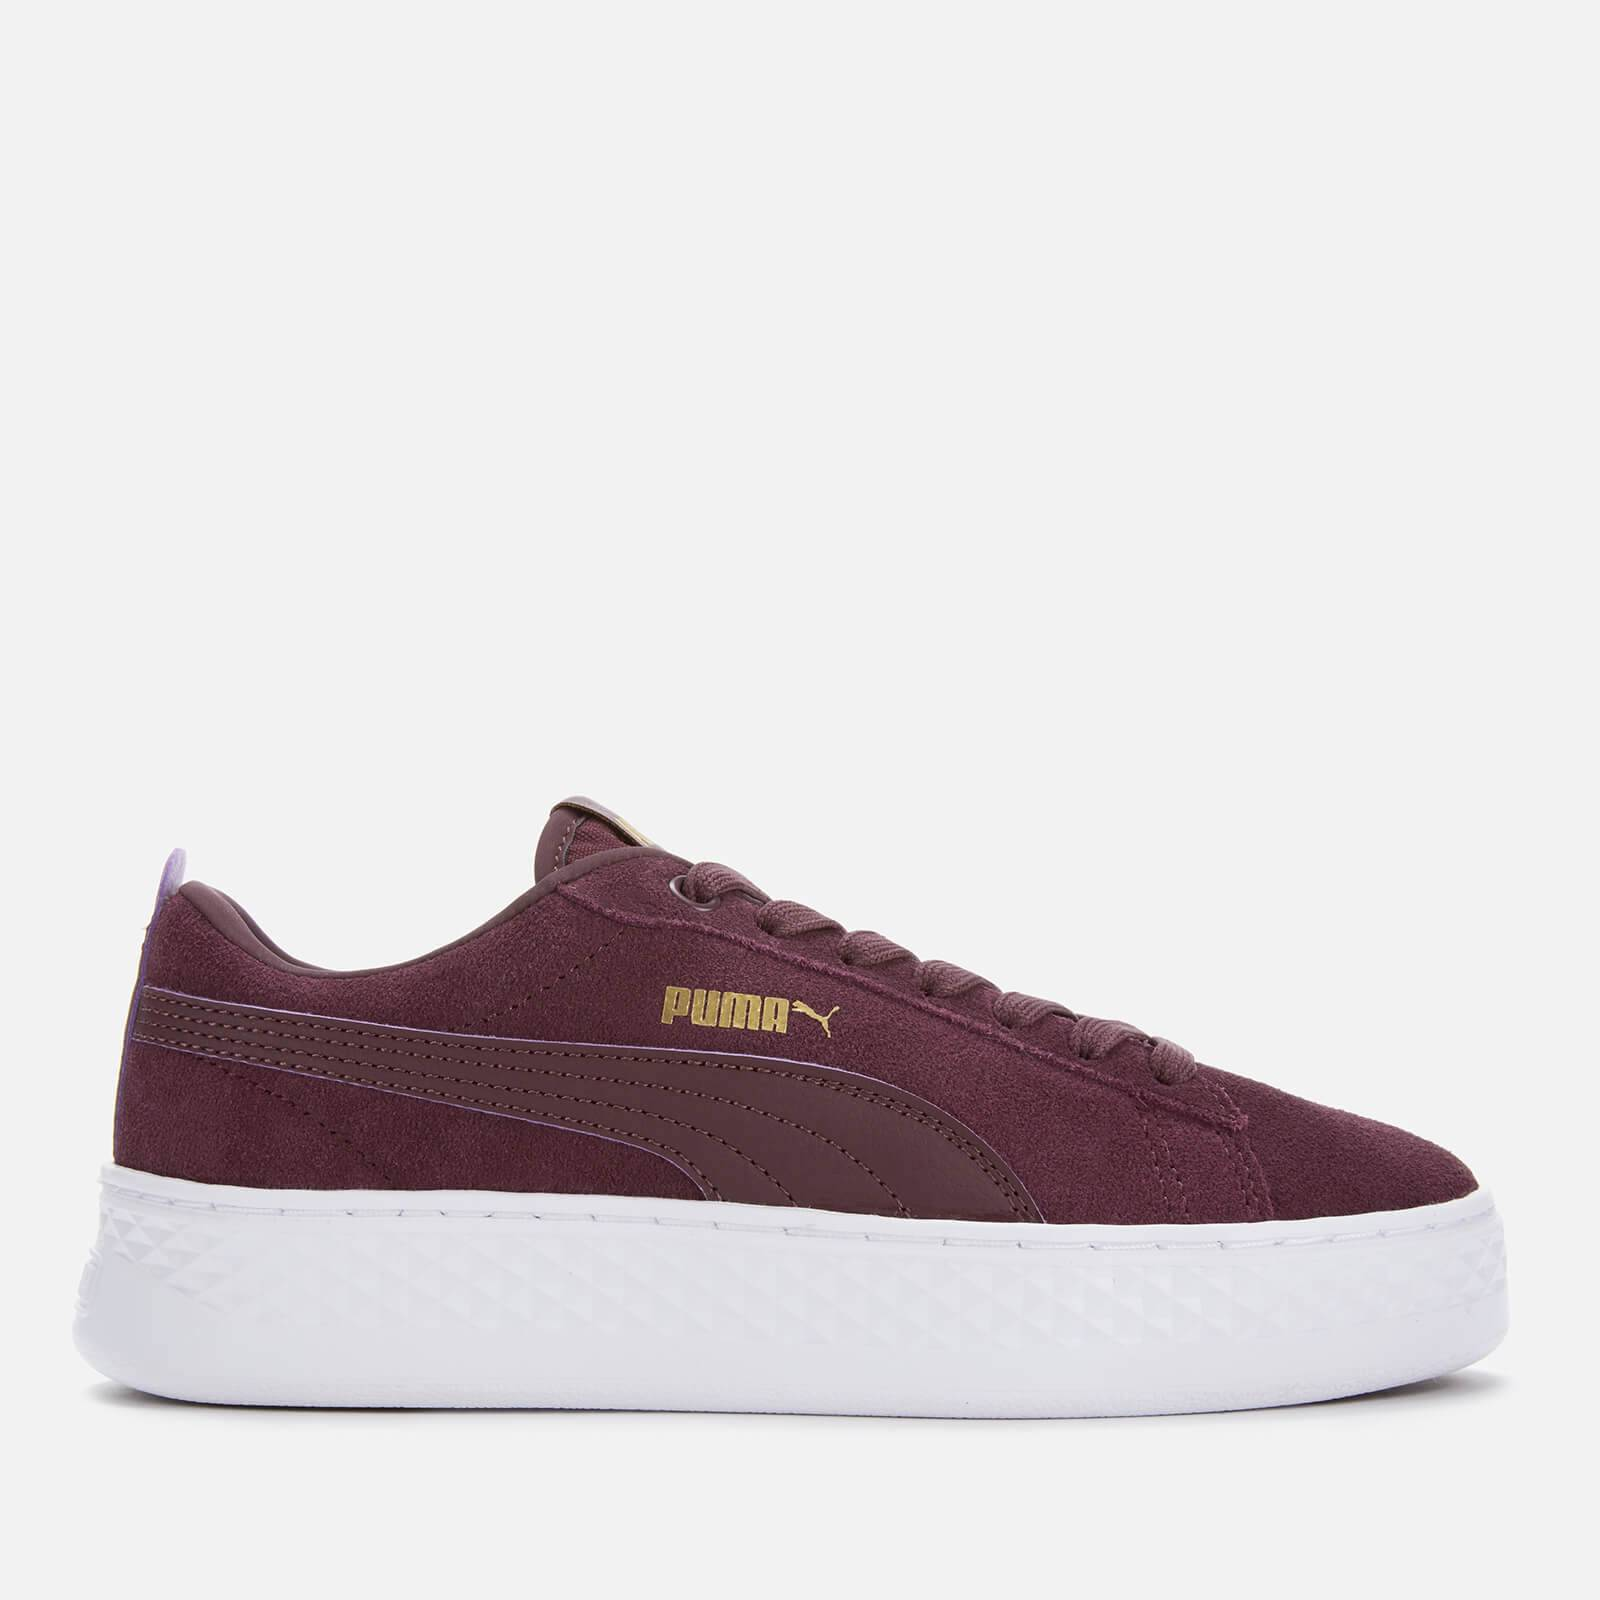 Puma Women's Smash Platform Low Trainers - Wine - UK 5 - Purple